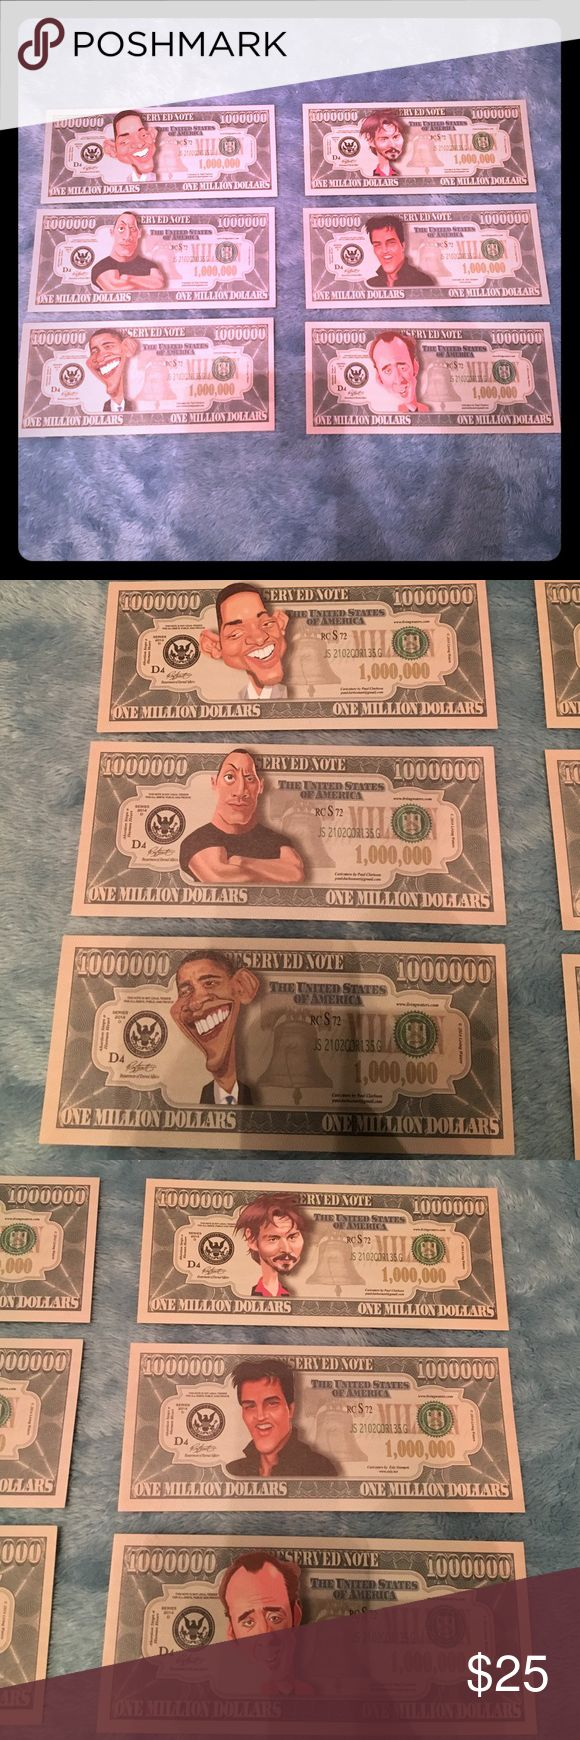 Various million dollar bills 6 famous celebrities on million dollar bill (FAKE MONEY)                                                                                 $5 for one or $25 for all OR BEST OFFER Other